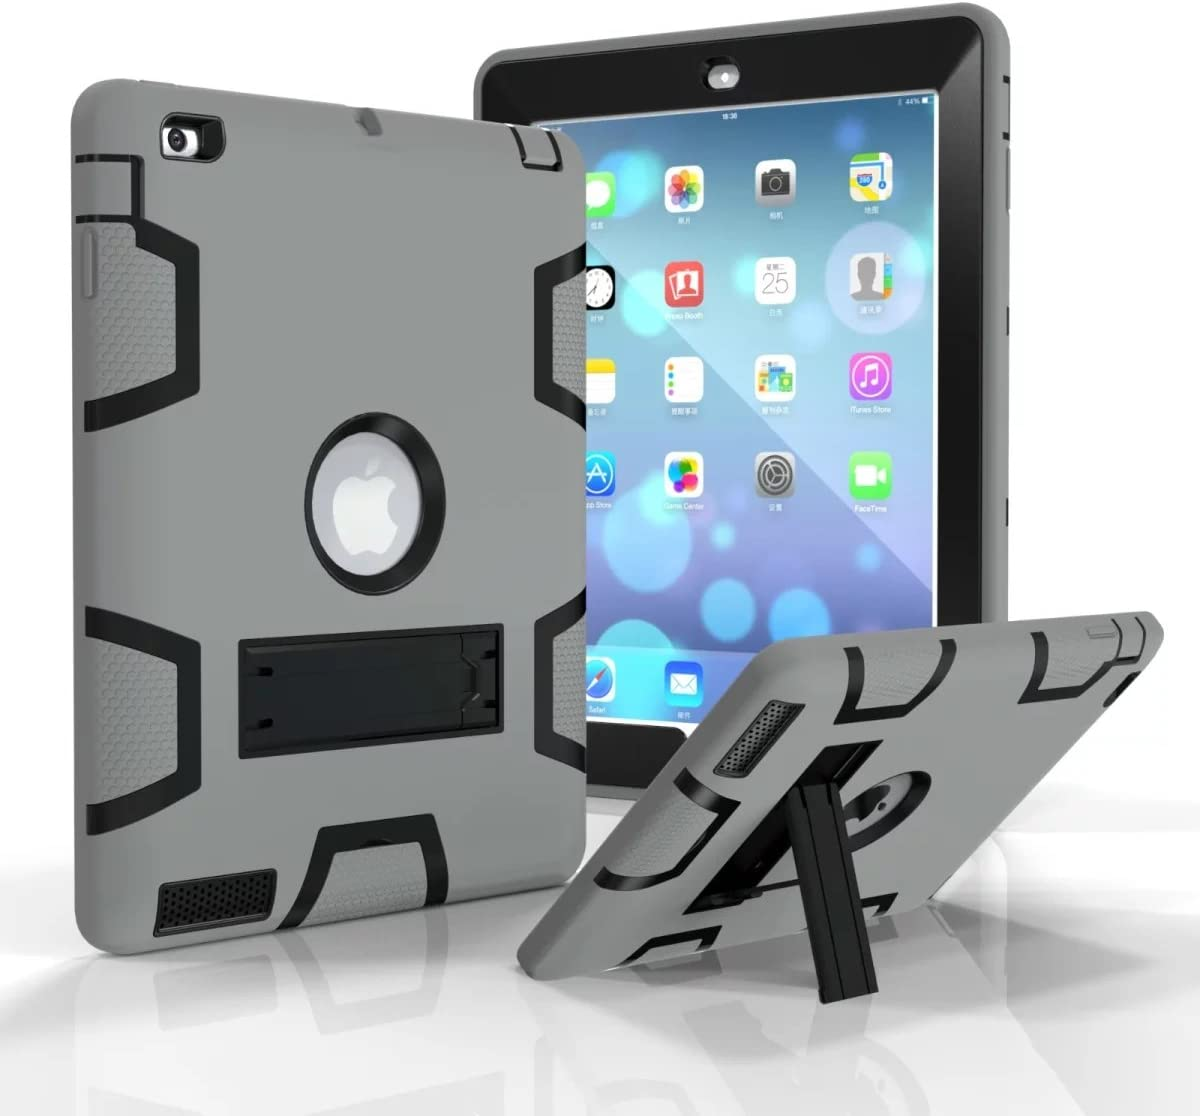 Jaorty iPad 2/3/4 Case,iPad 2/3/4 Retina Case, 3 in 1 Hybrid [Soft&Hard] Heavy Duty Rugged Stand Cover Shockproof Anti-Slip Anti-Scratch Full-Body Protective Cases for iPad 2/3/4, Gray/Black